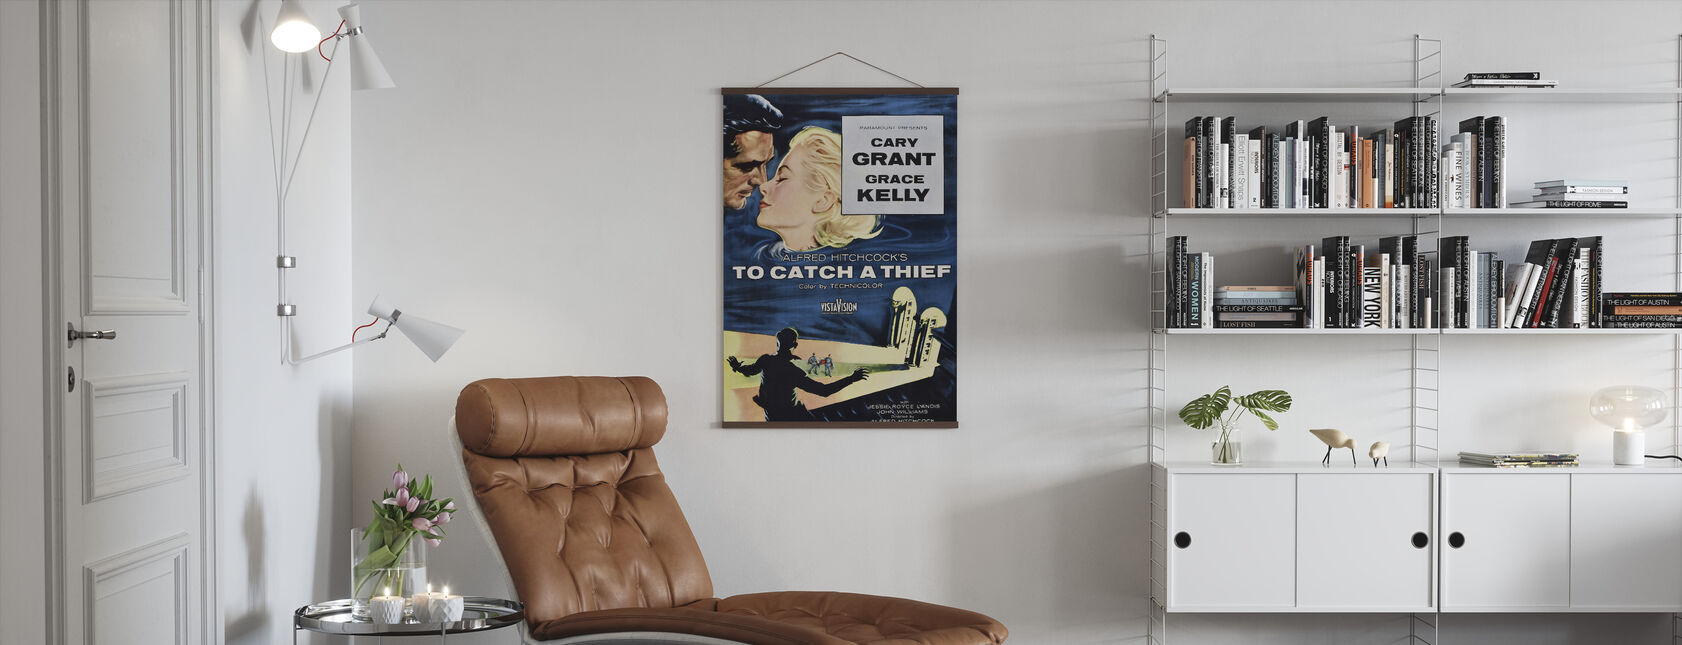 To Catch a Thief - Poster - Living Room